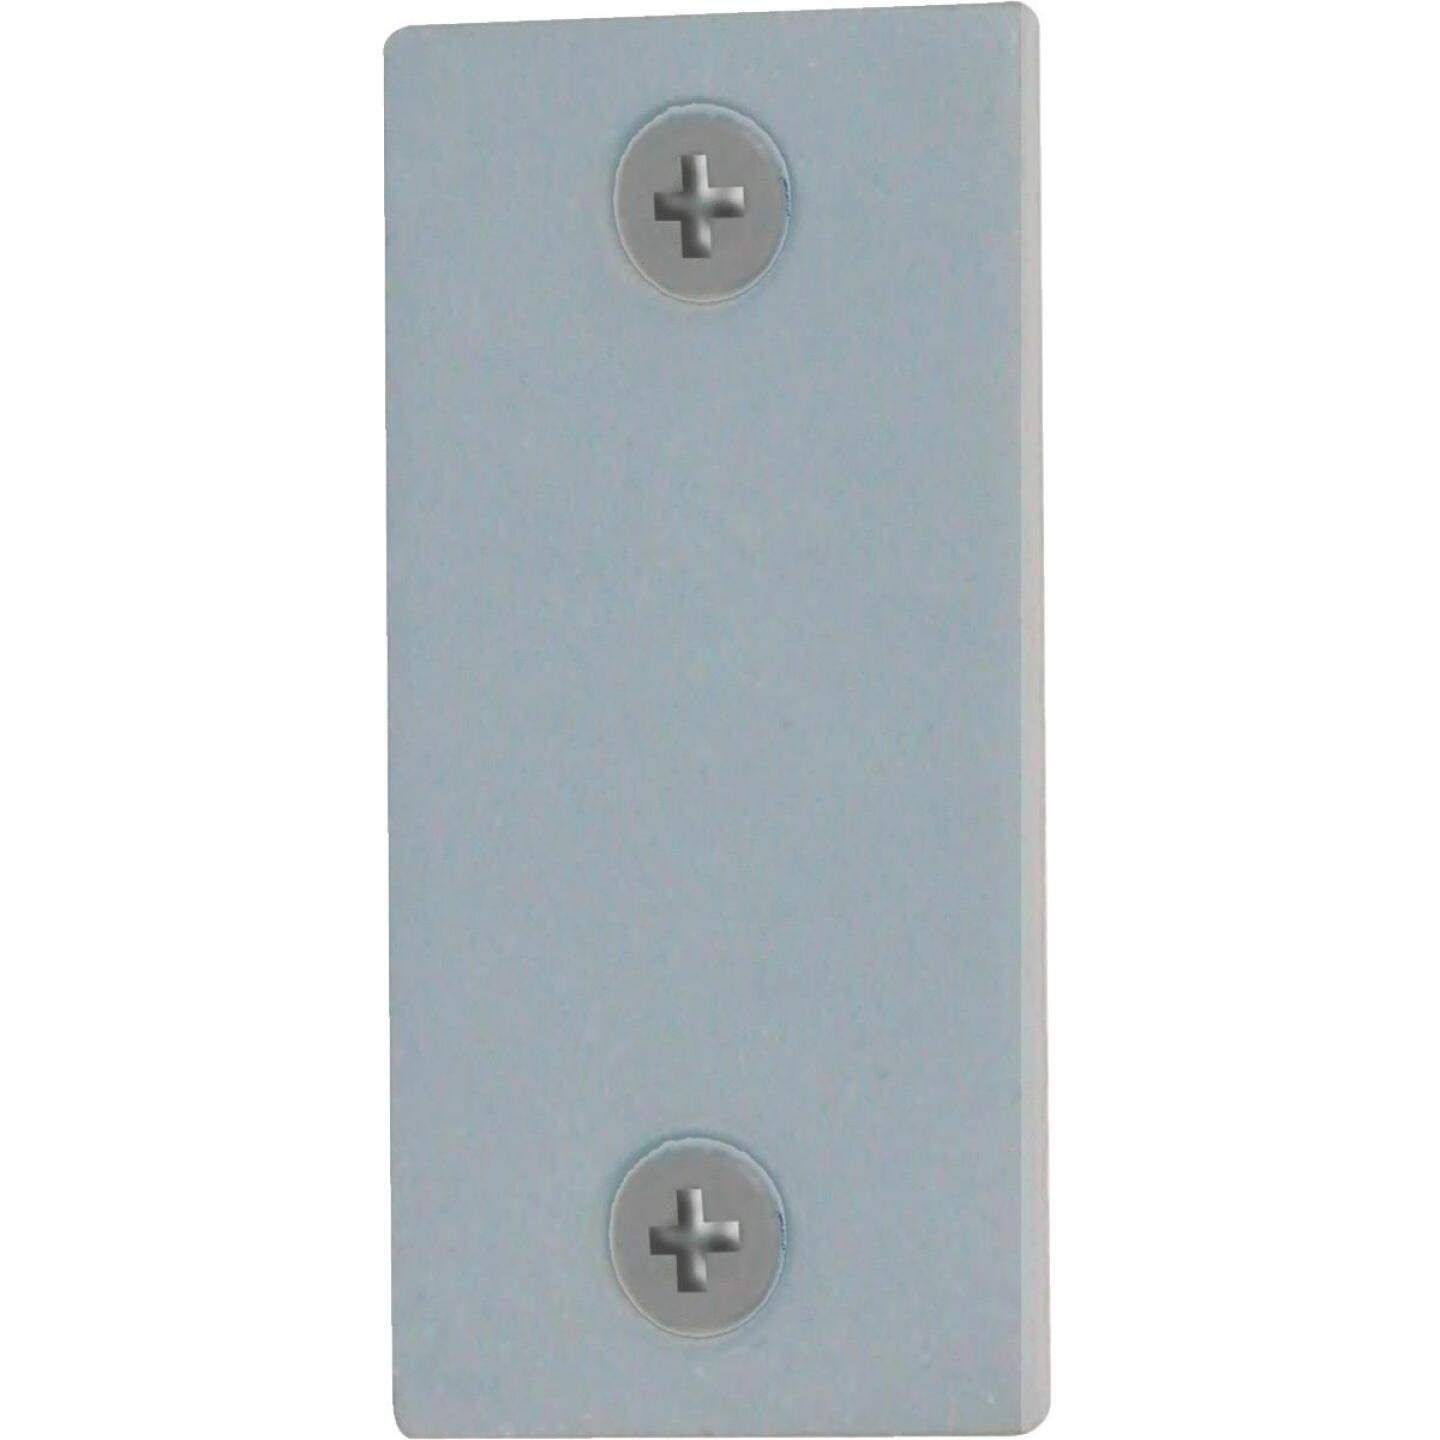 Defender Security 1-1/8 In. x 2-1/4 In. Latch Bolt Filler Plate Image 1